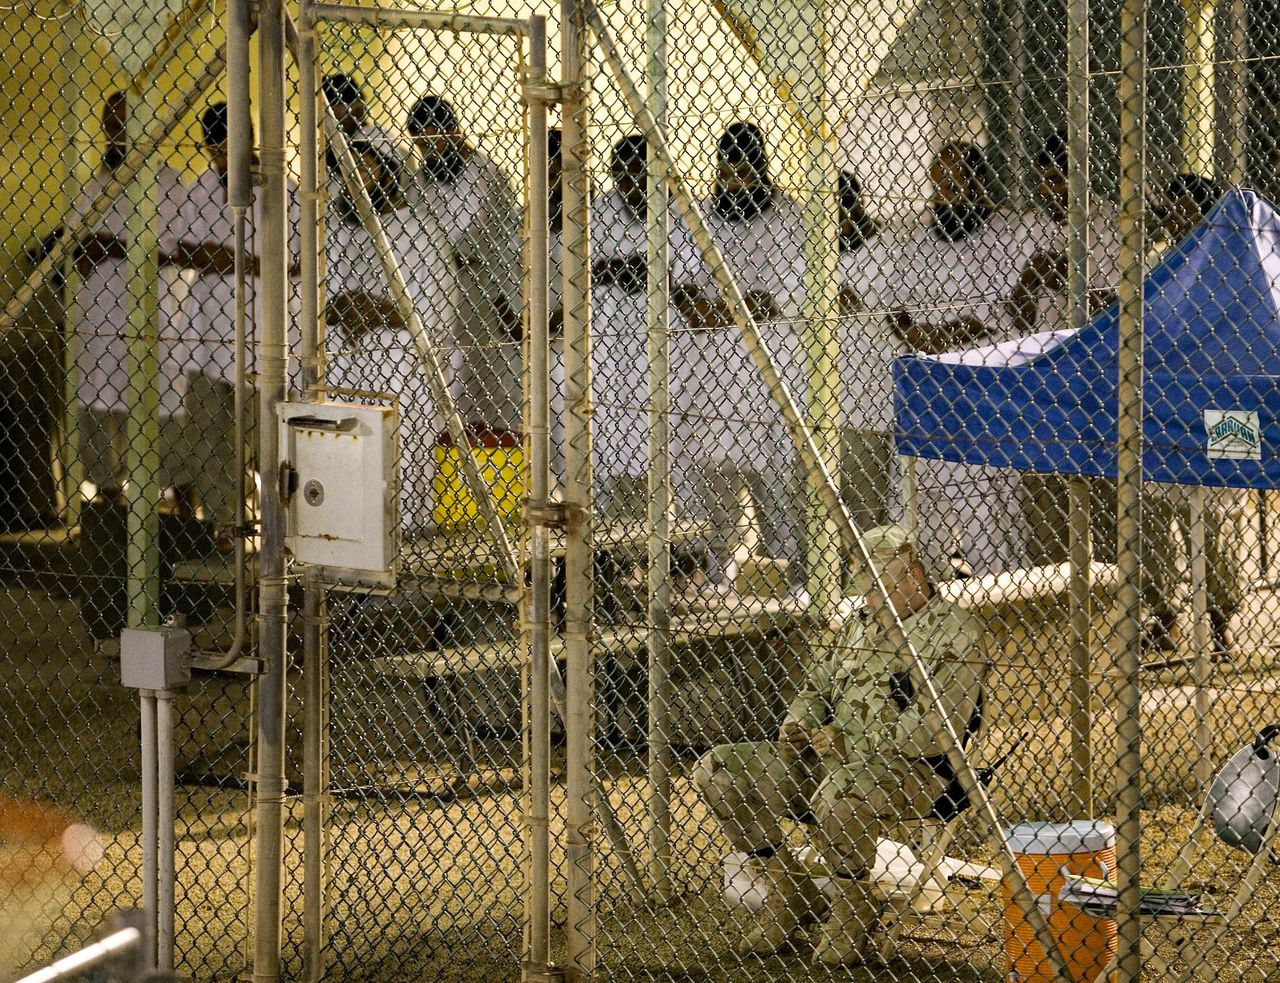 Ochtendgebed in het Amerikaanse detentiekamp Guantánamo Bay. De Amerikaanse minister van Justitie wil CIA-medewerkers vervolgen die te ver zijn gegaan bij het verhoren van terreurverdachten. Foto Reuters In this image reviewed by the U.S. Military, a group of Guantanamo detainees participate in the early morning Islamic prayer, as a U.S. military guard sits nearby at Camp 4 detention facility at the U.S. Naval Base, in Guantanamo Bay, Cuba, Tuesday, Nov. 18, 2008. A federal judge on Thursday, Nov. 20 ordered the release of five Algerians held at Guantanamo Bay, Cuba, and the continued detention of a sixth in what is being called a blow to the Bush administration's policy to keep terror suspects locked up without charges. (AP Photo/Brennan Linsley)